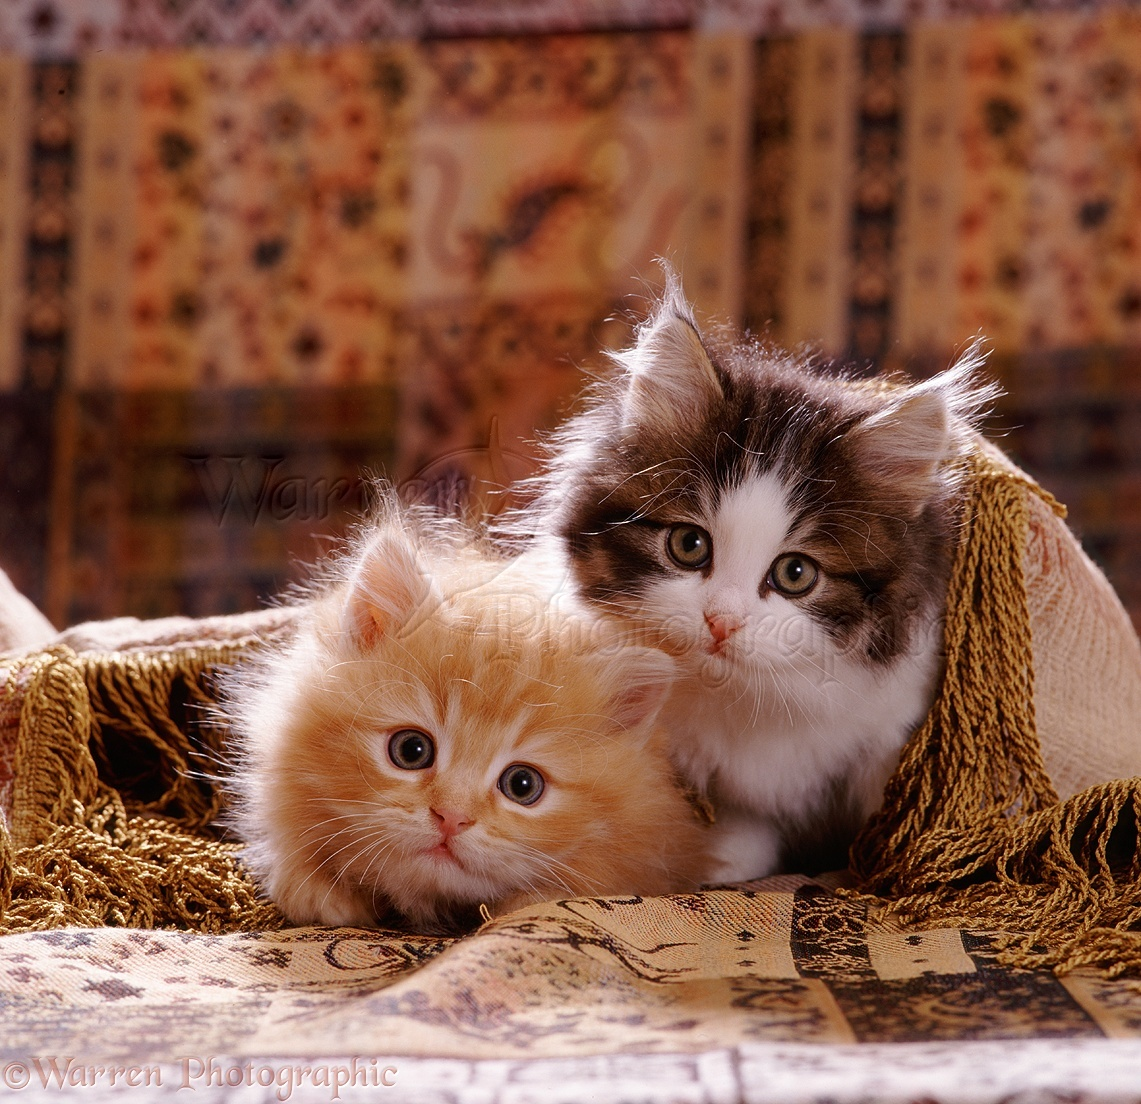 Cute kittens under a cover photo WP